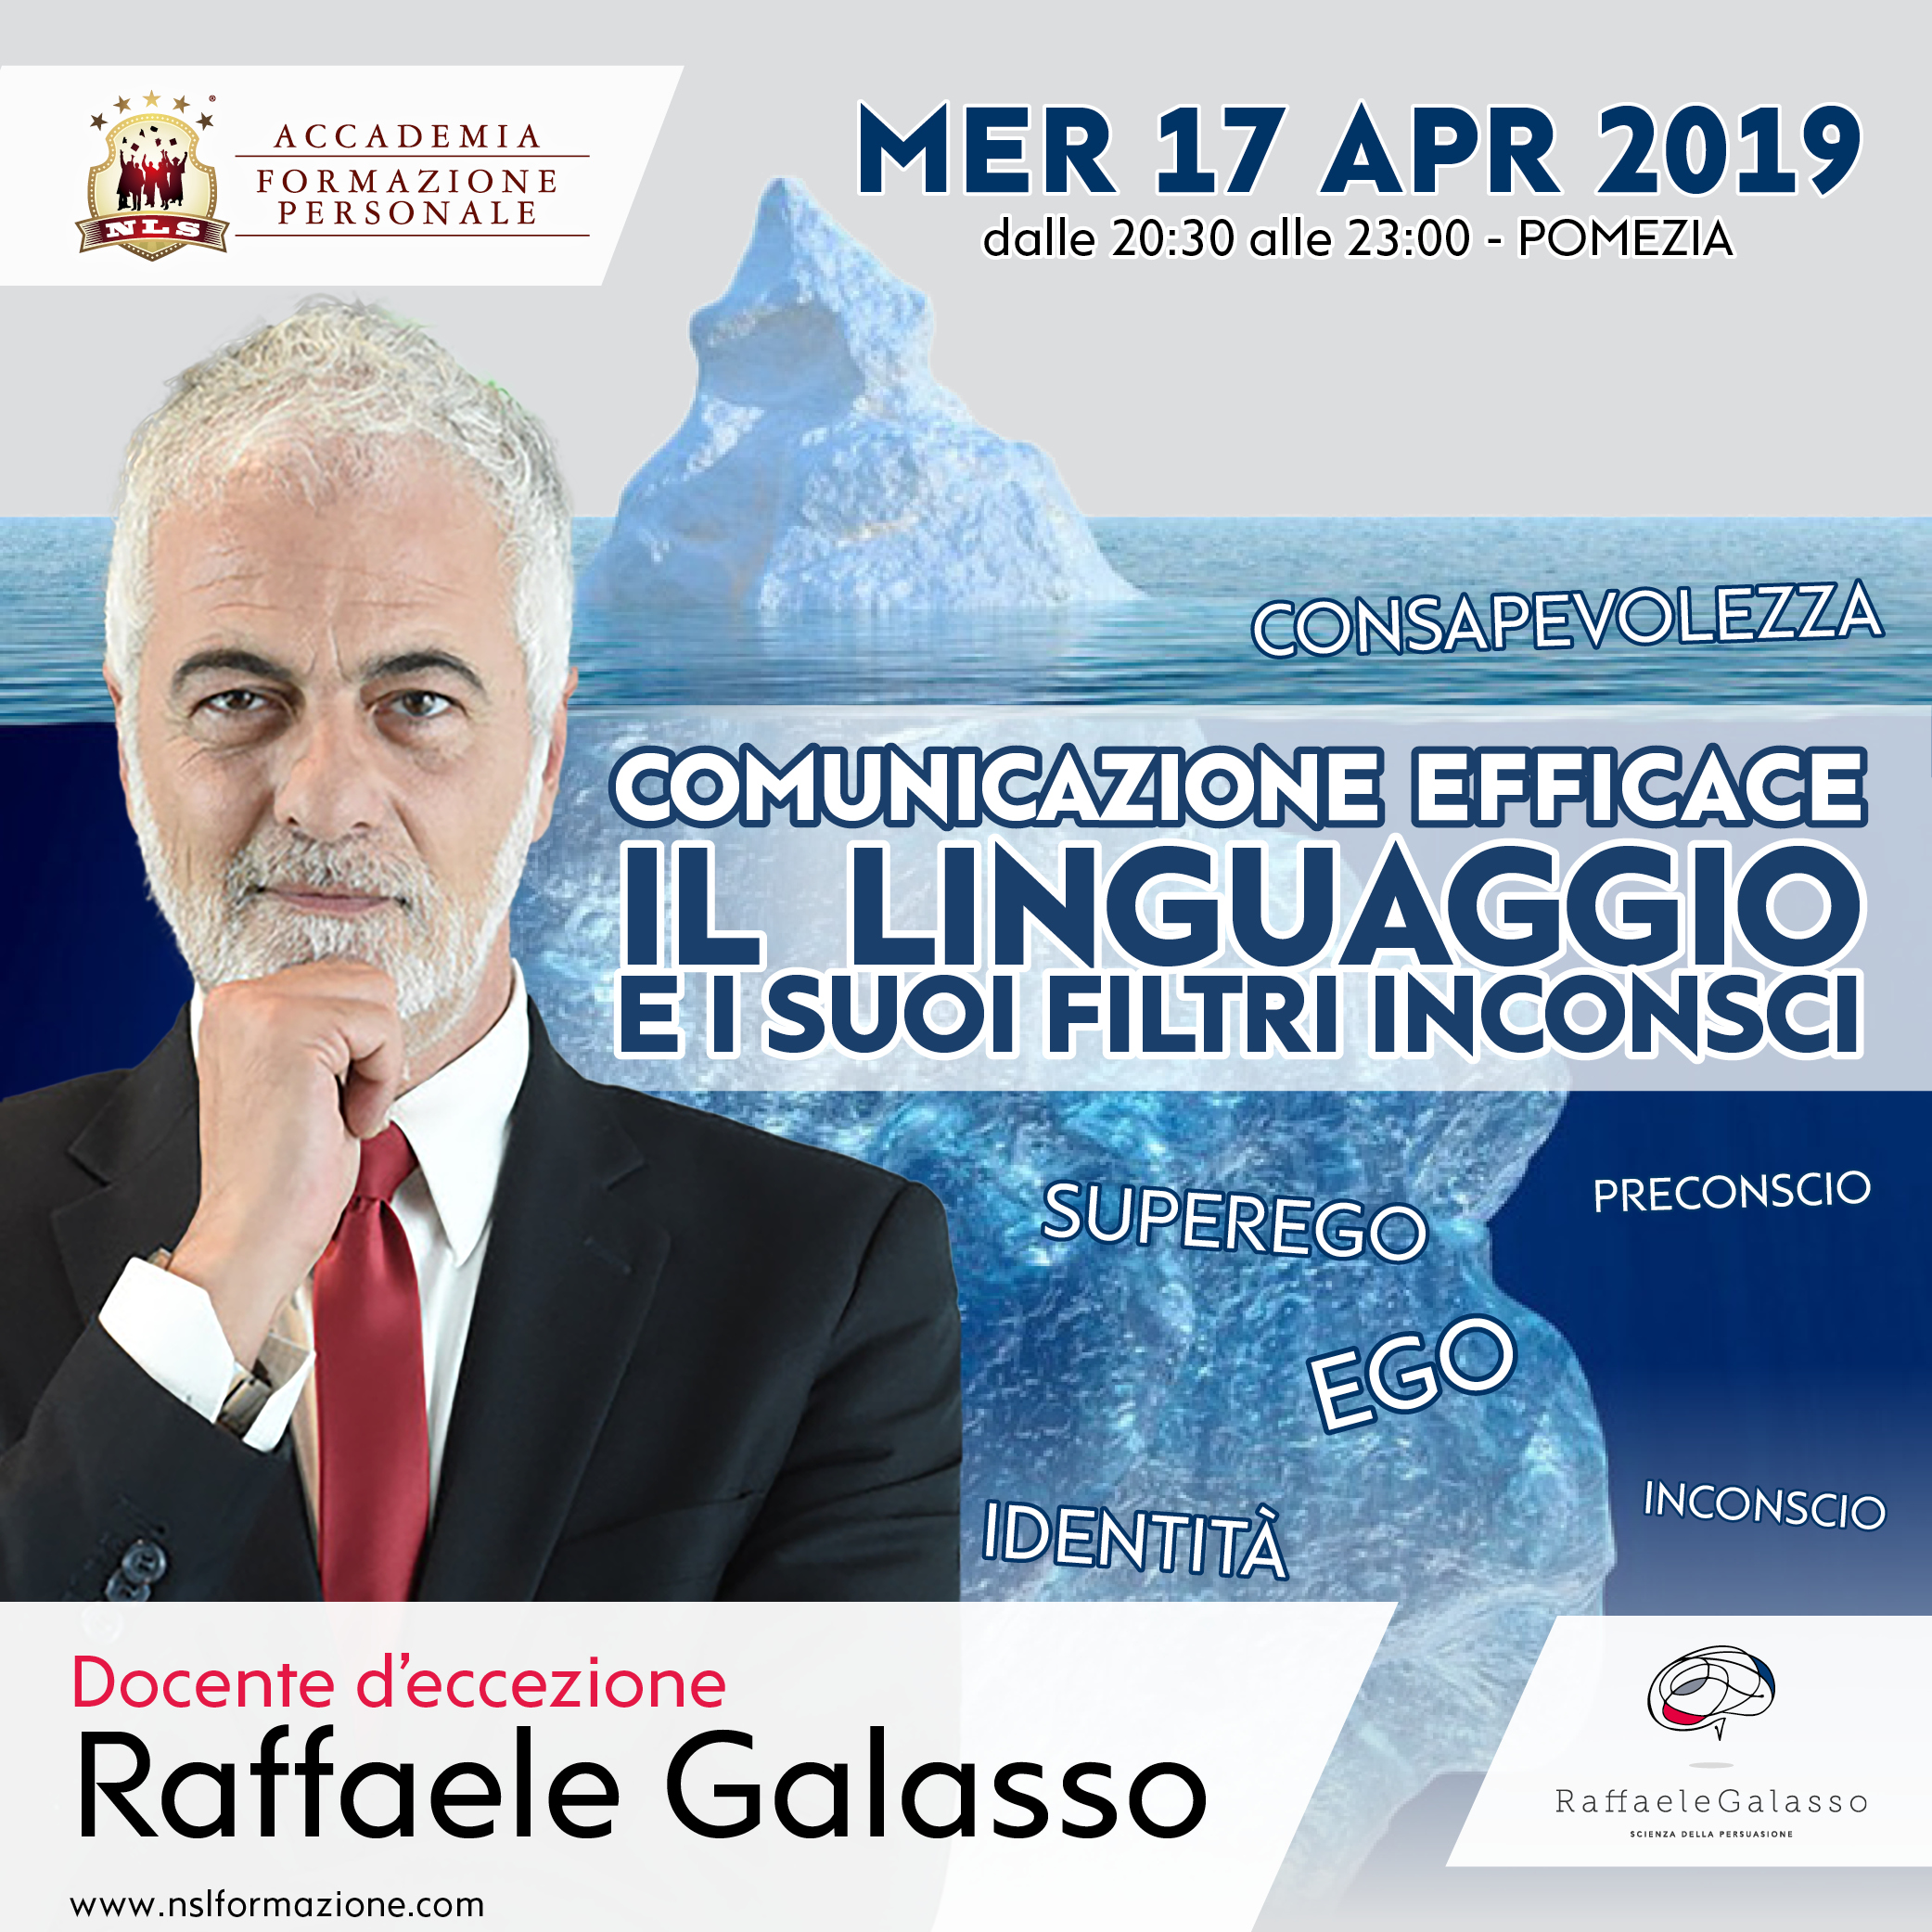 post FB - Galasso 17apr